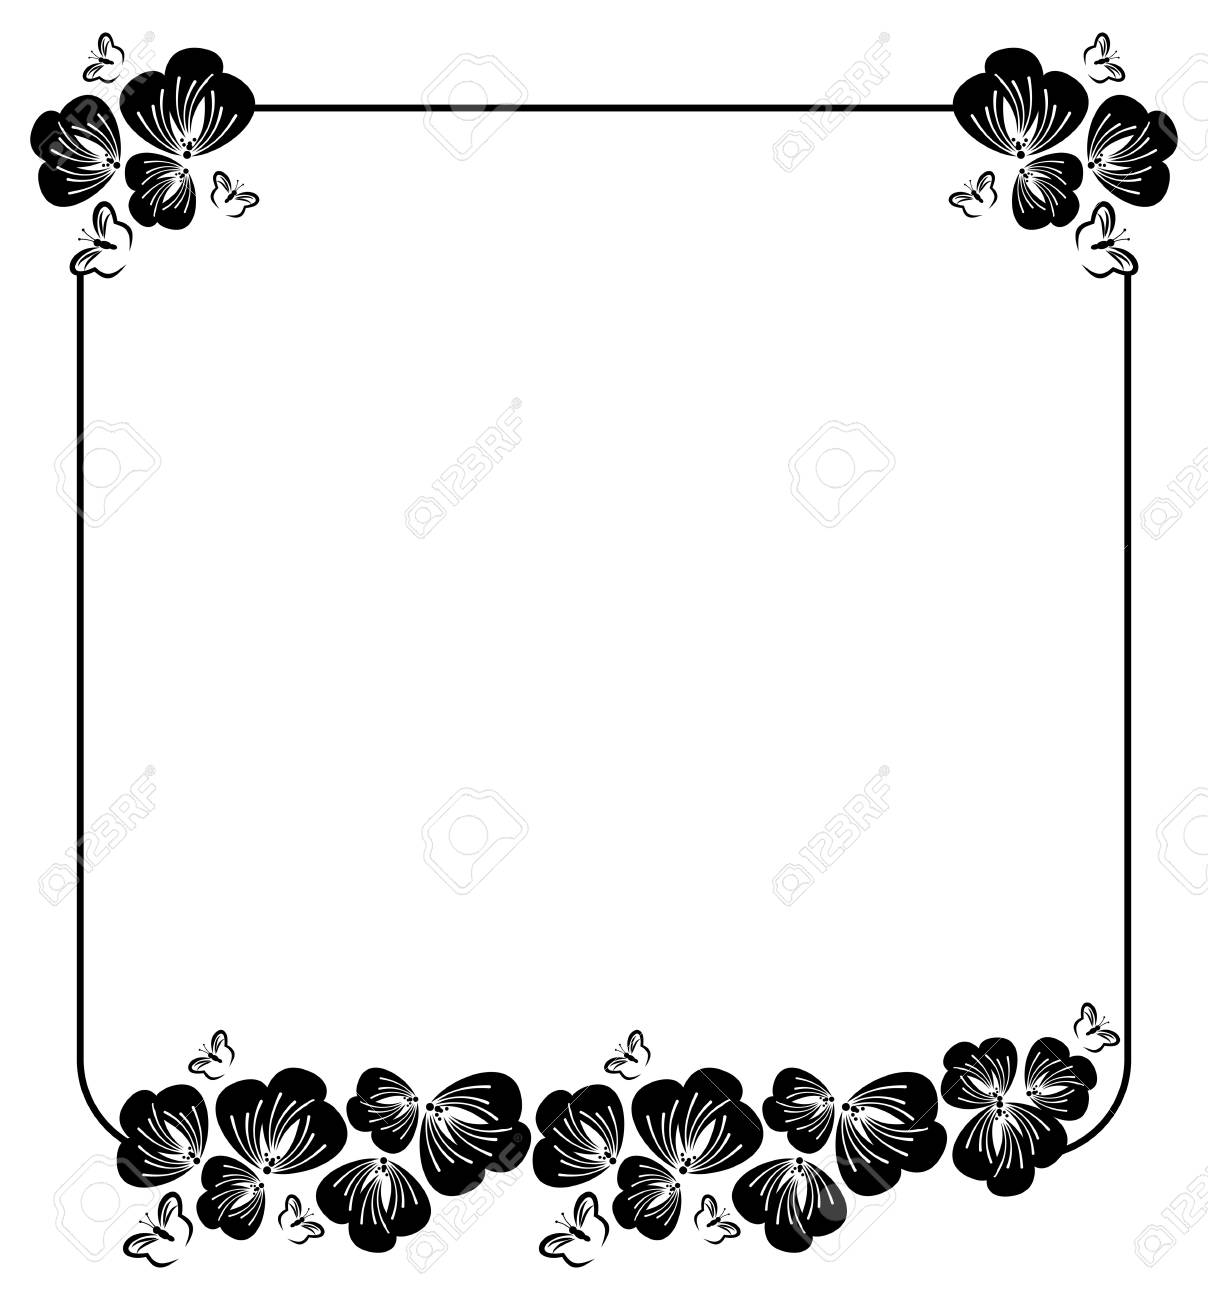 Square Silhouette Flower Frame Simple Black And White With Abstract Flowers Stock Vector